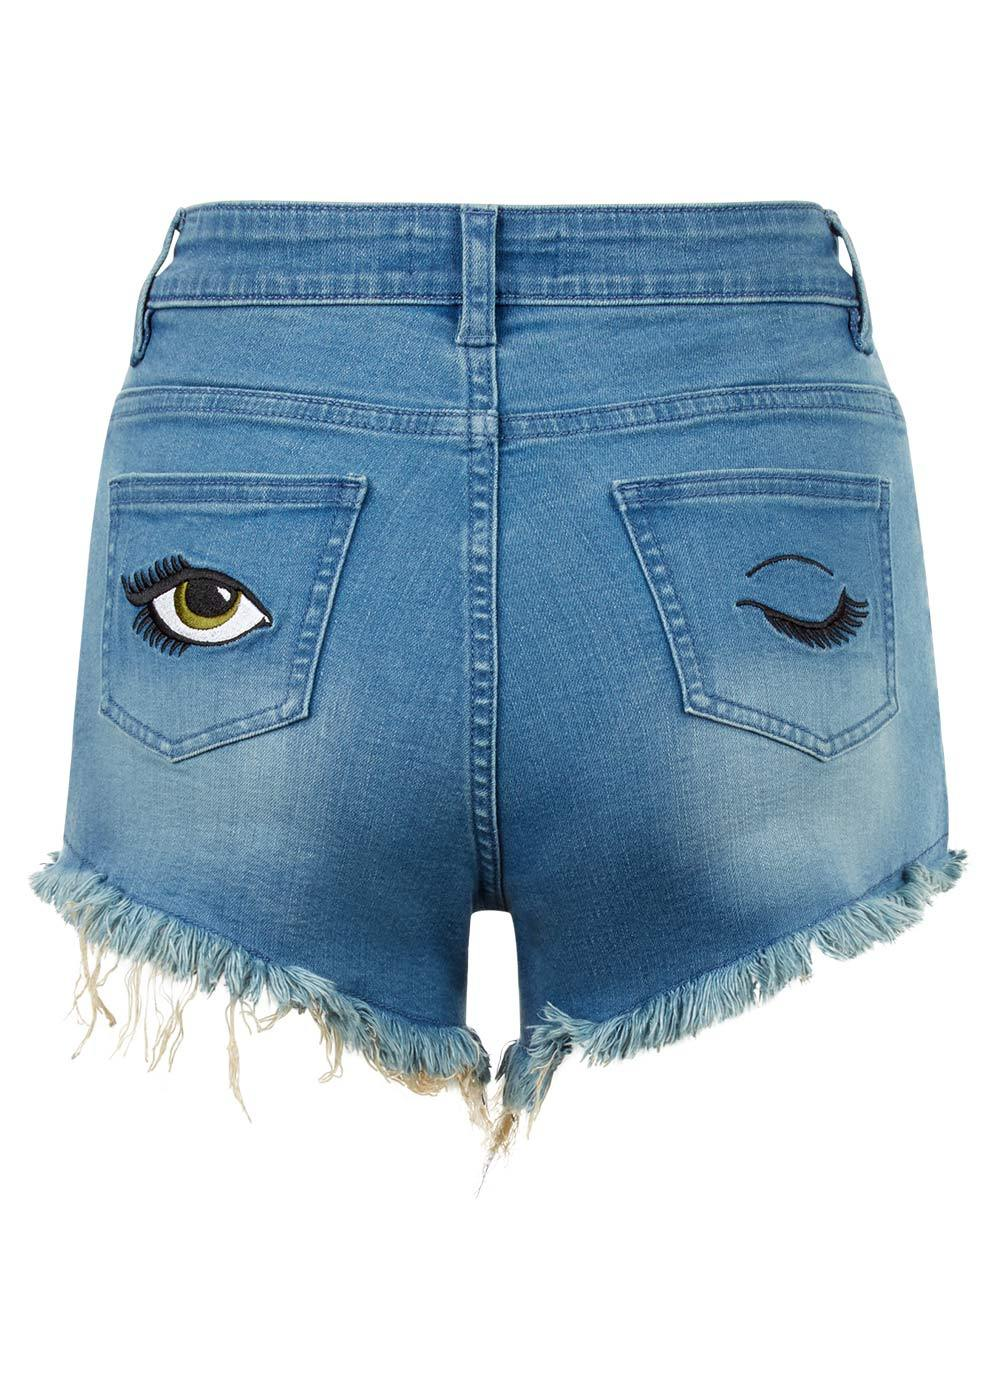 Girls Light Blue Denim Shorts With Embroidered Eyes - Back